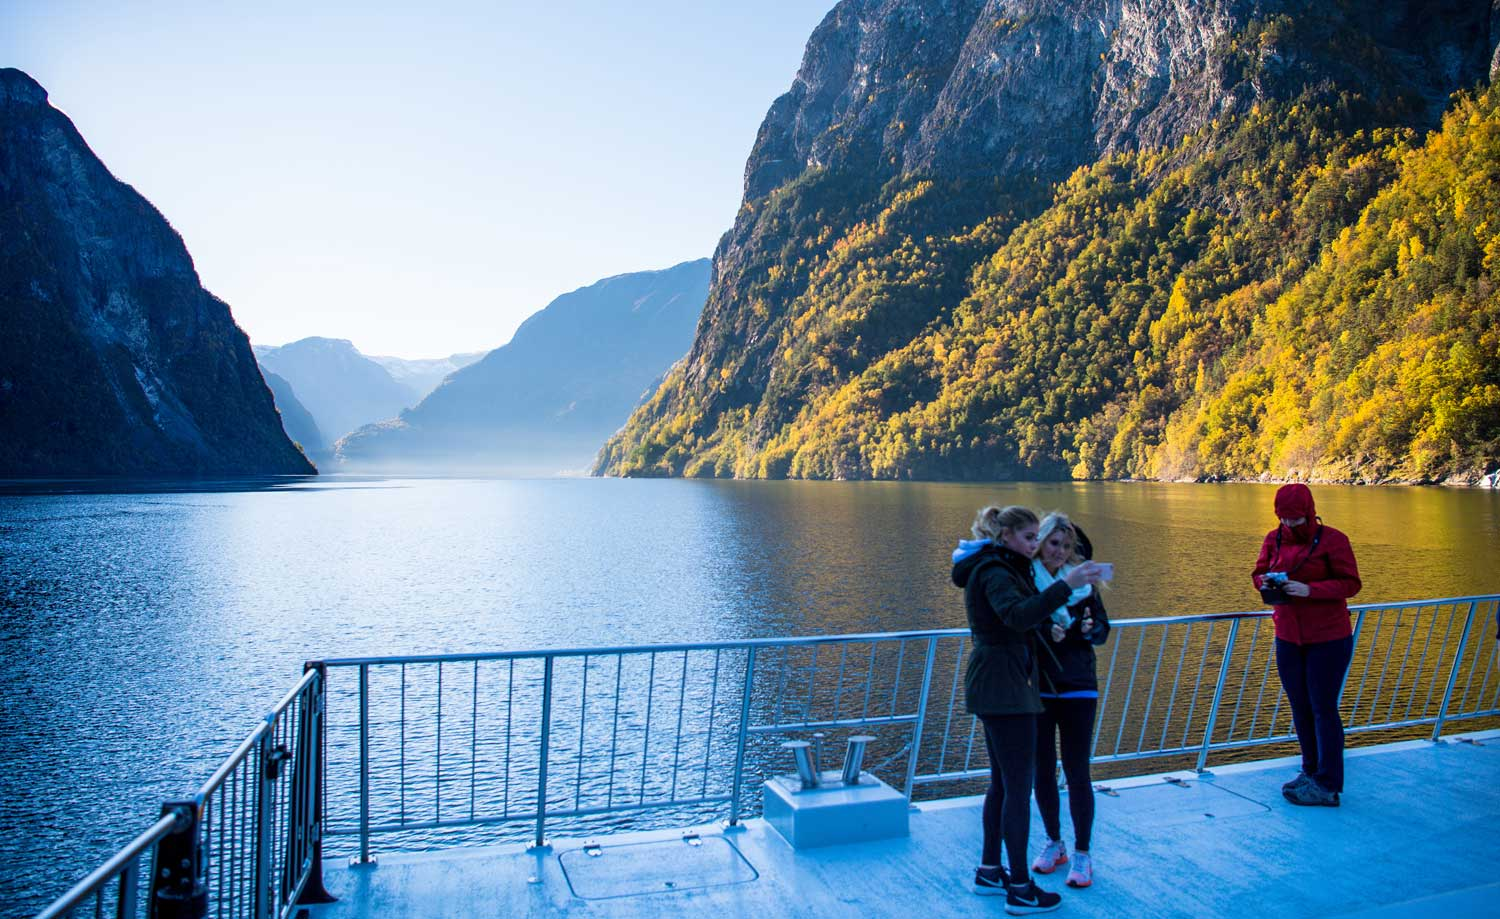 When is the best time to on a fjord cruise - autumn